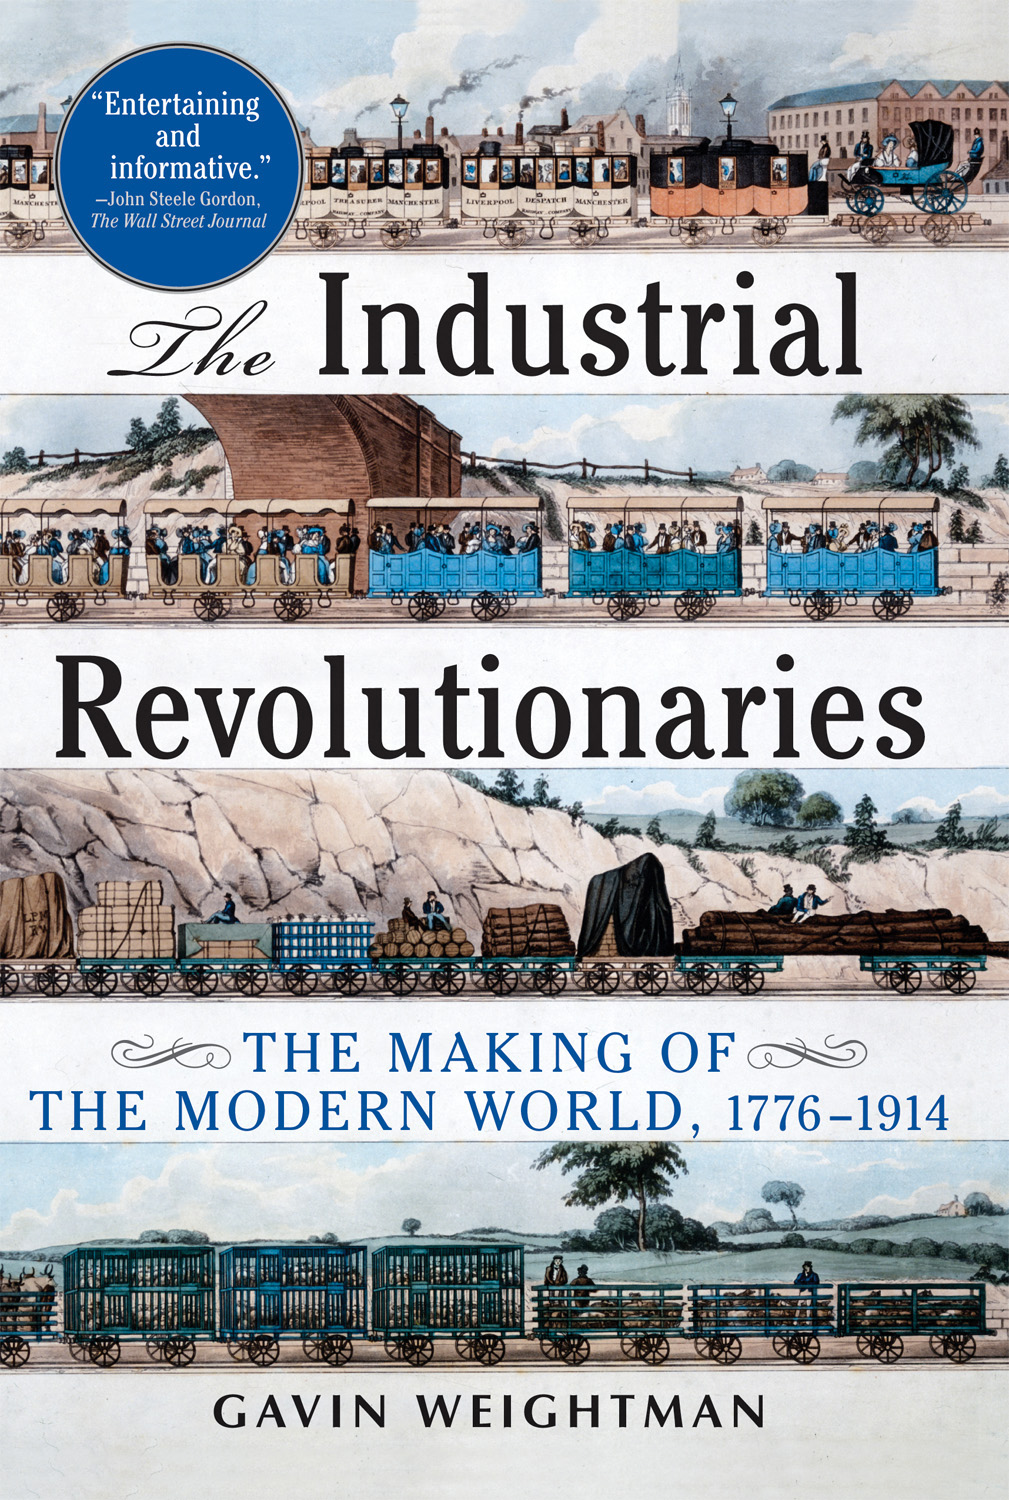 The Industrial Revolutionaries By: Gavin Weightman